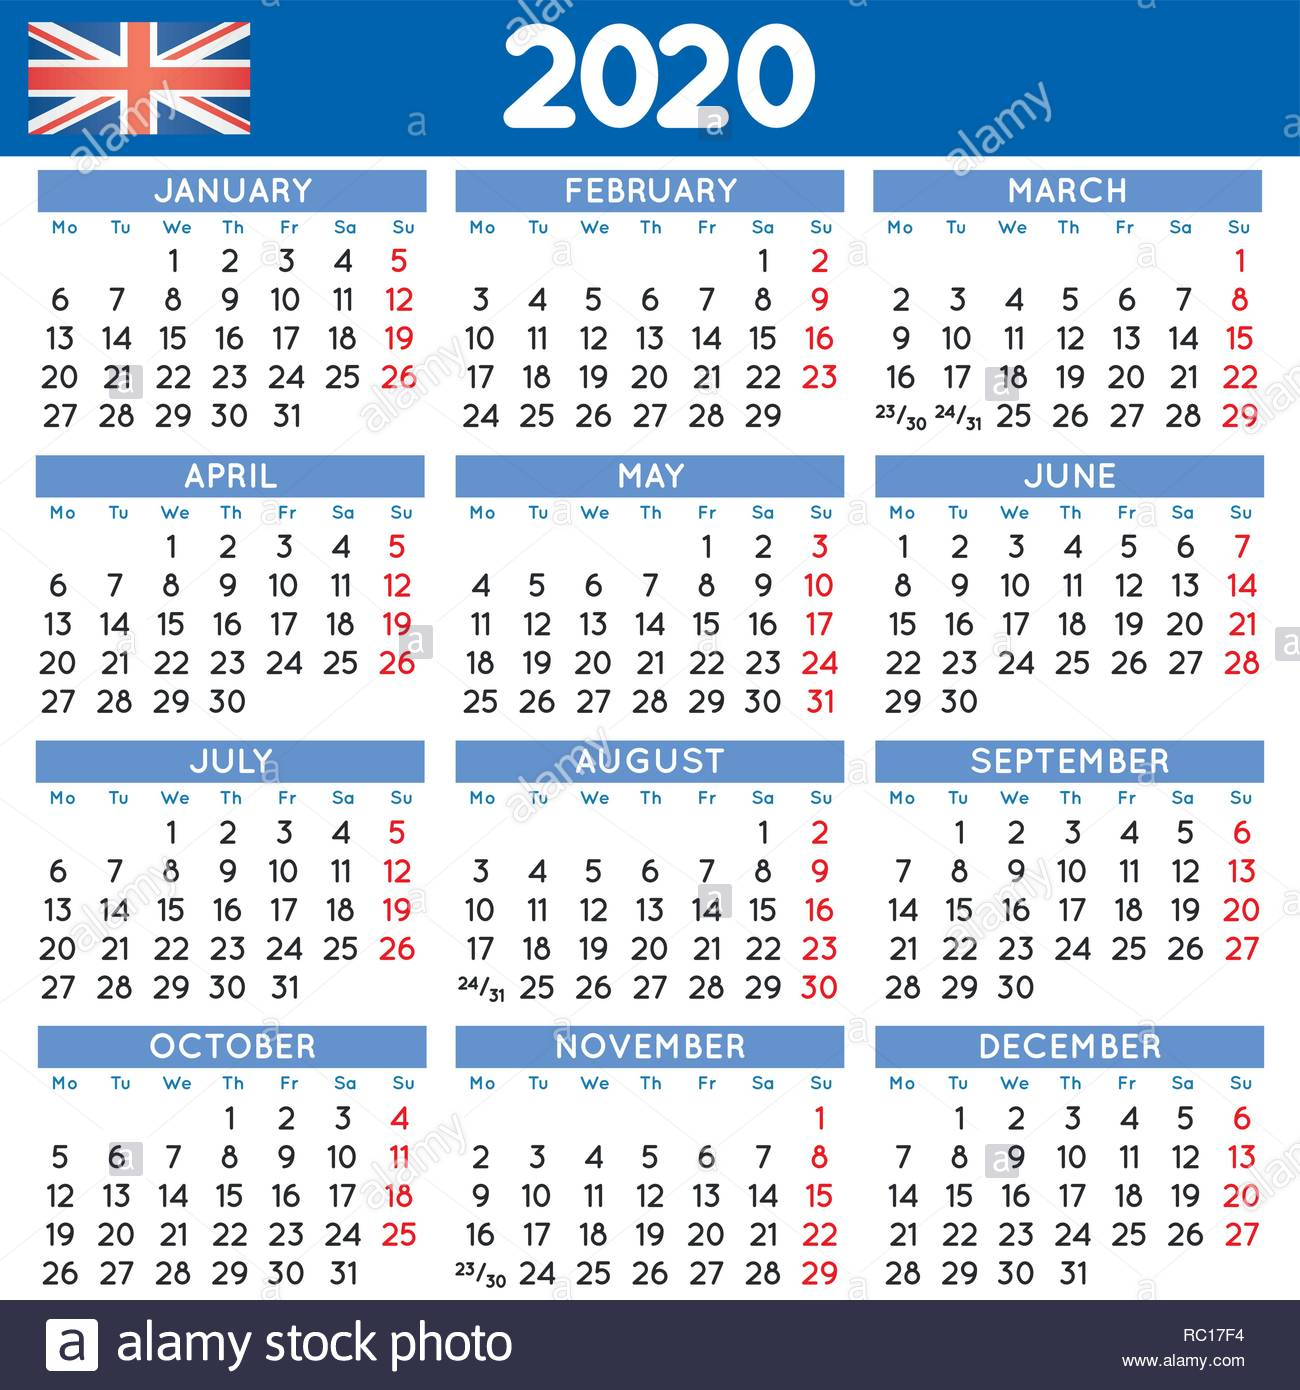 Semaines Calendrier 2020.2020 Calendrier Carre Elegant English Uk Calendrier Annee